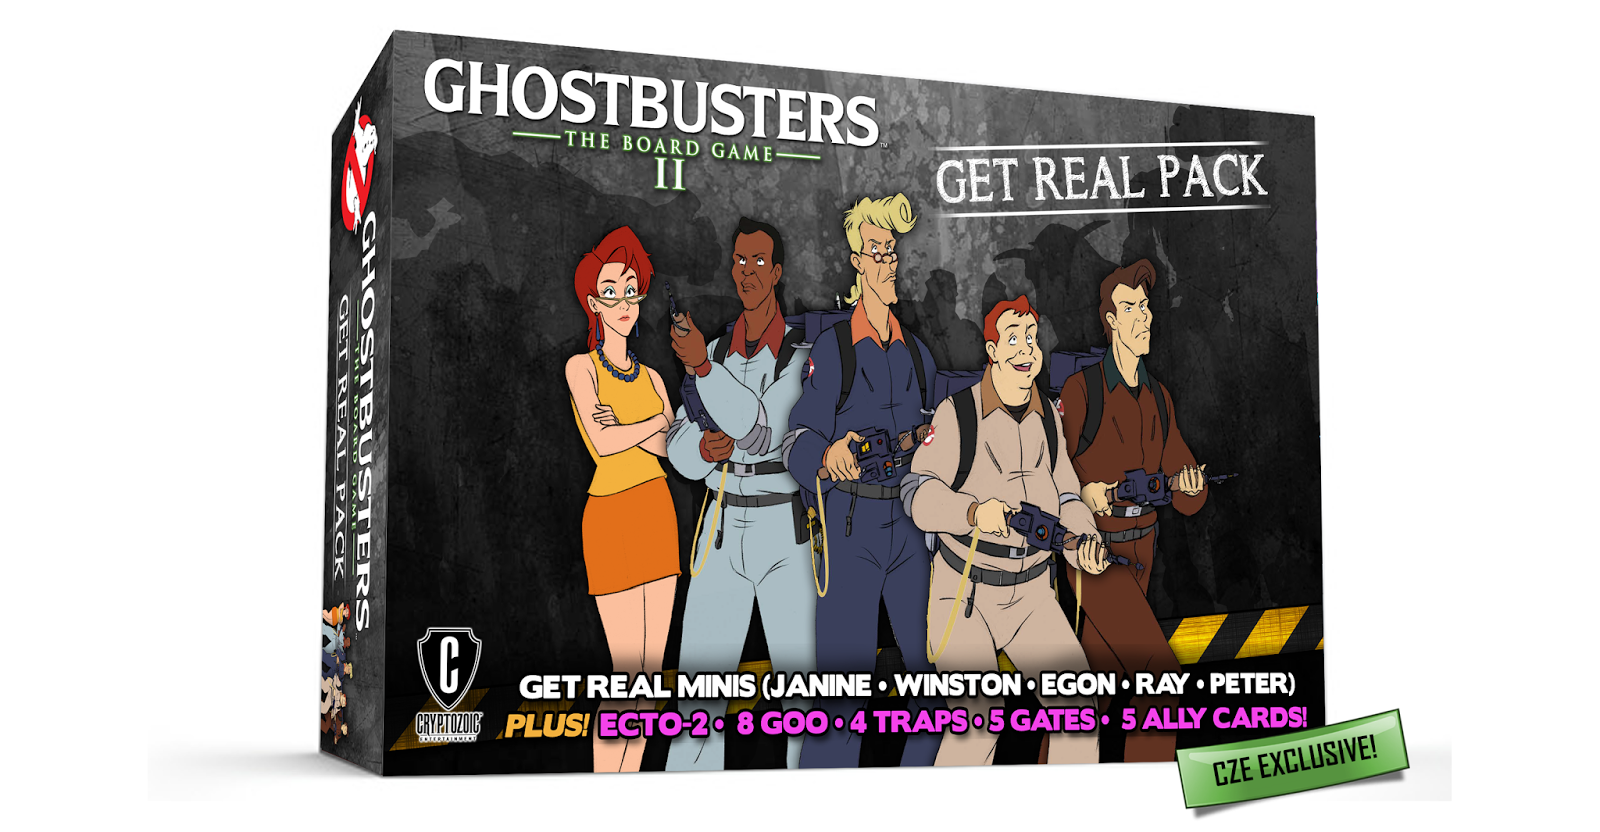 Real ghostbusters are back in ghostbusters the board game ii